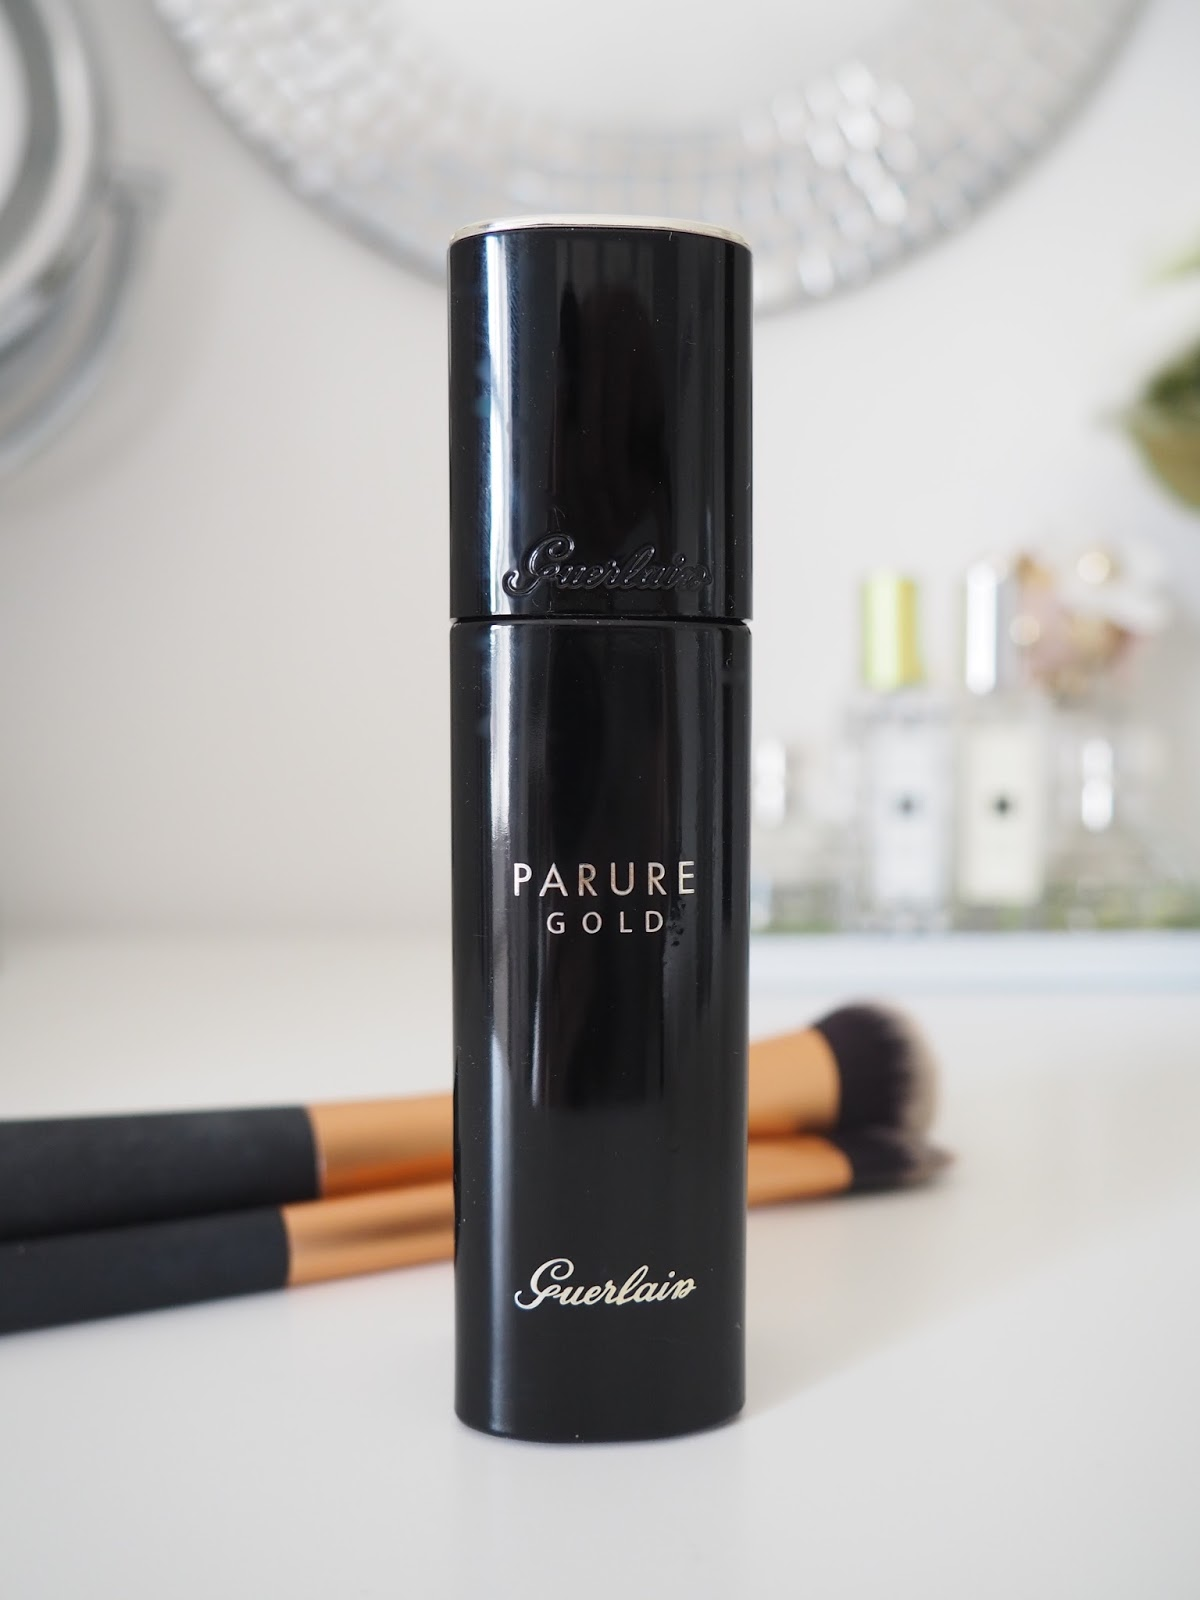 Guerlain Parure gold foundation skin makeup cosmetics